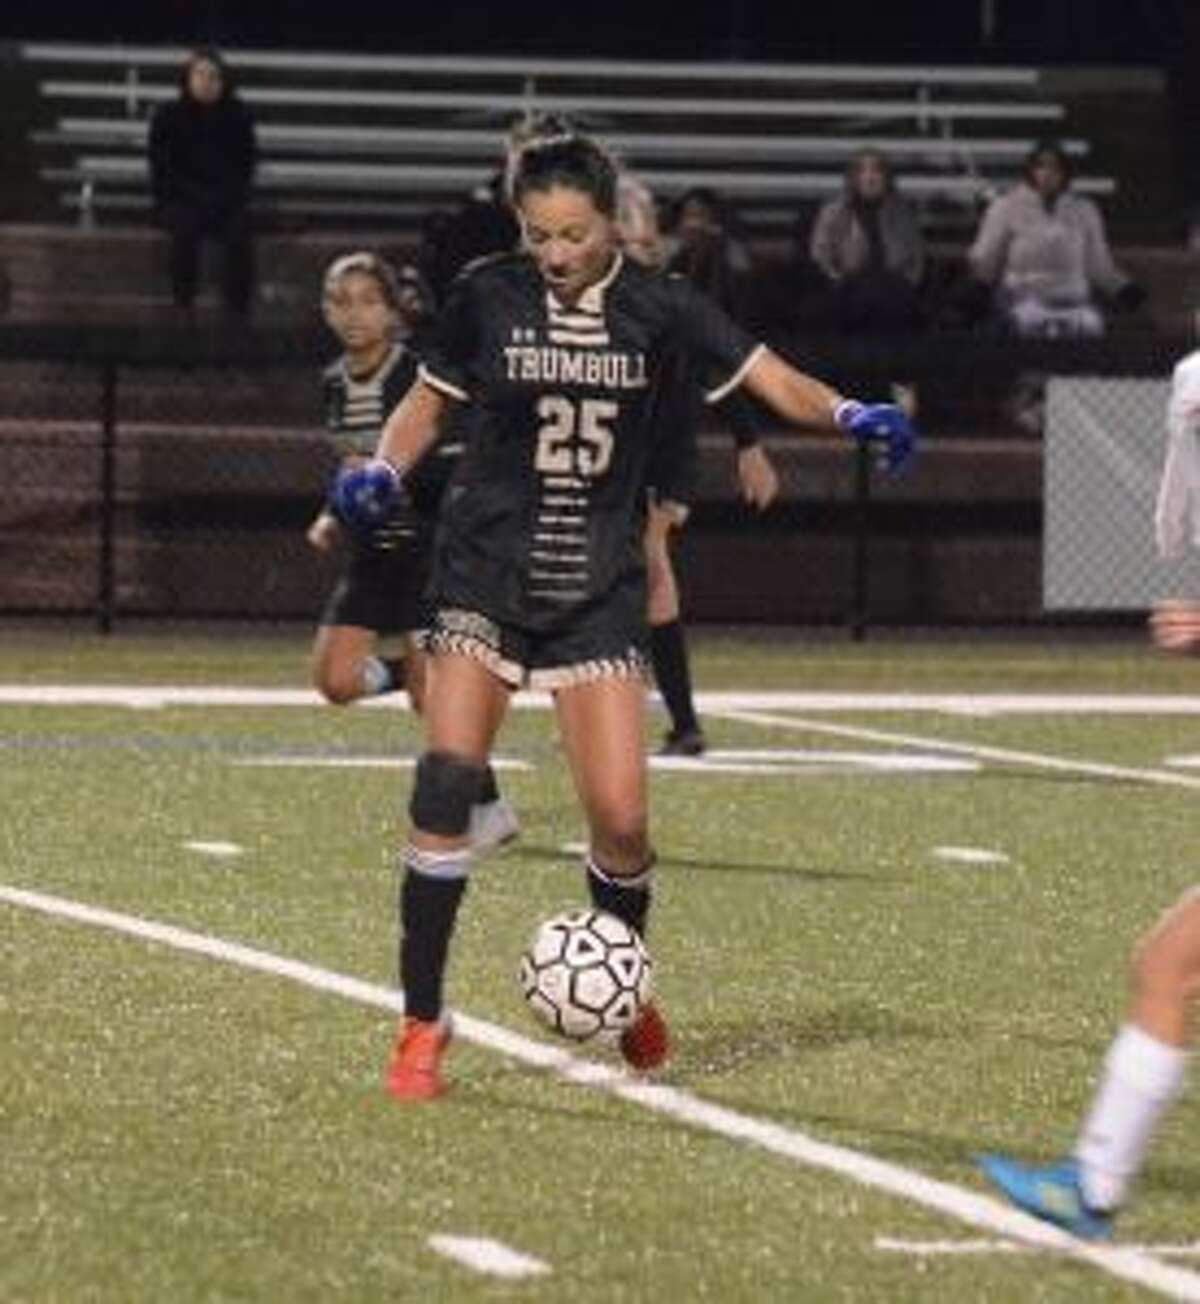 Alexa Andrews controls the ball at midfield. - Andy Hutchison photos